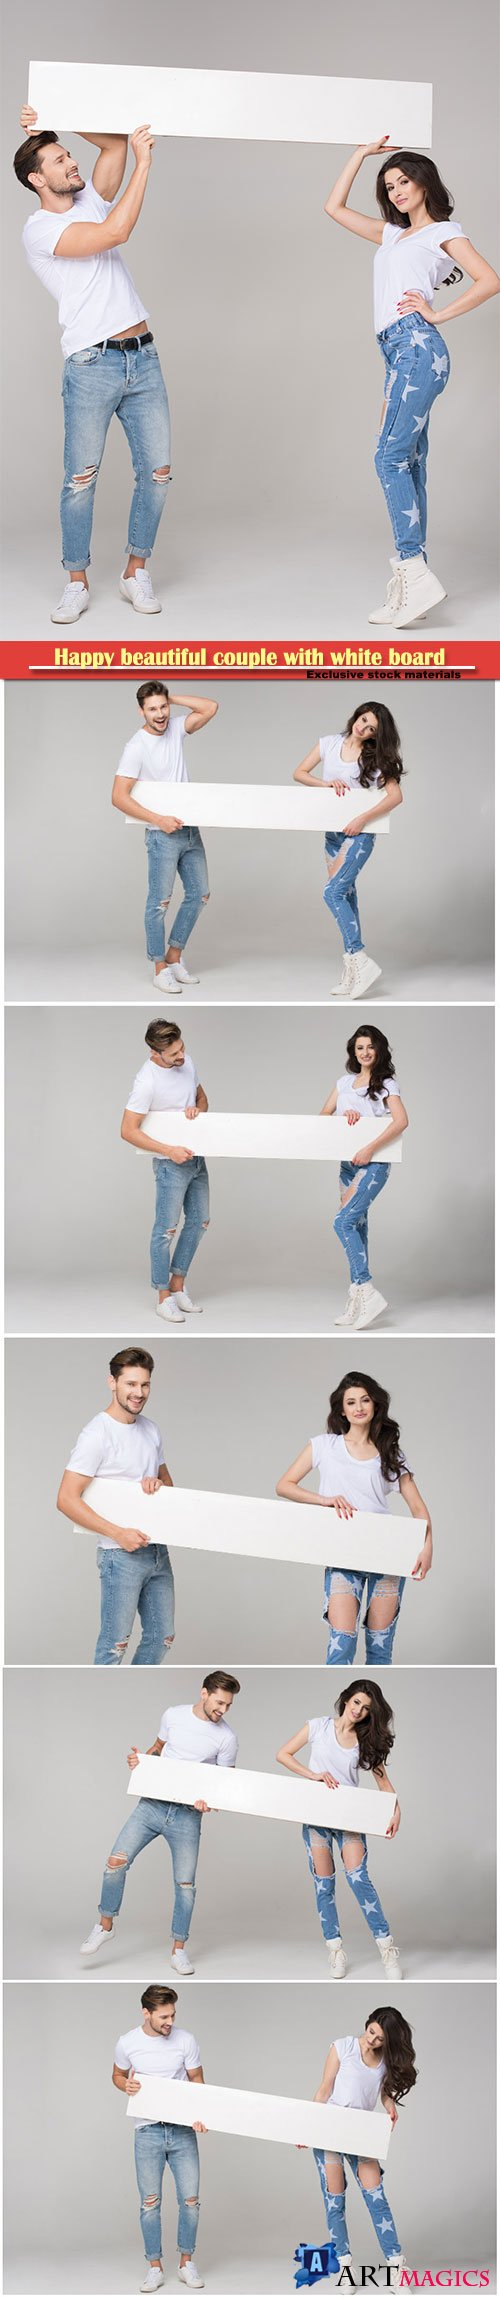 Happy beautiful couple with white board